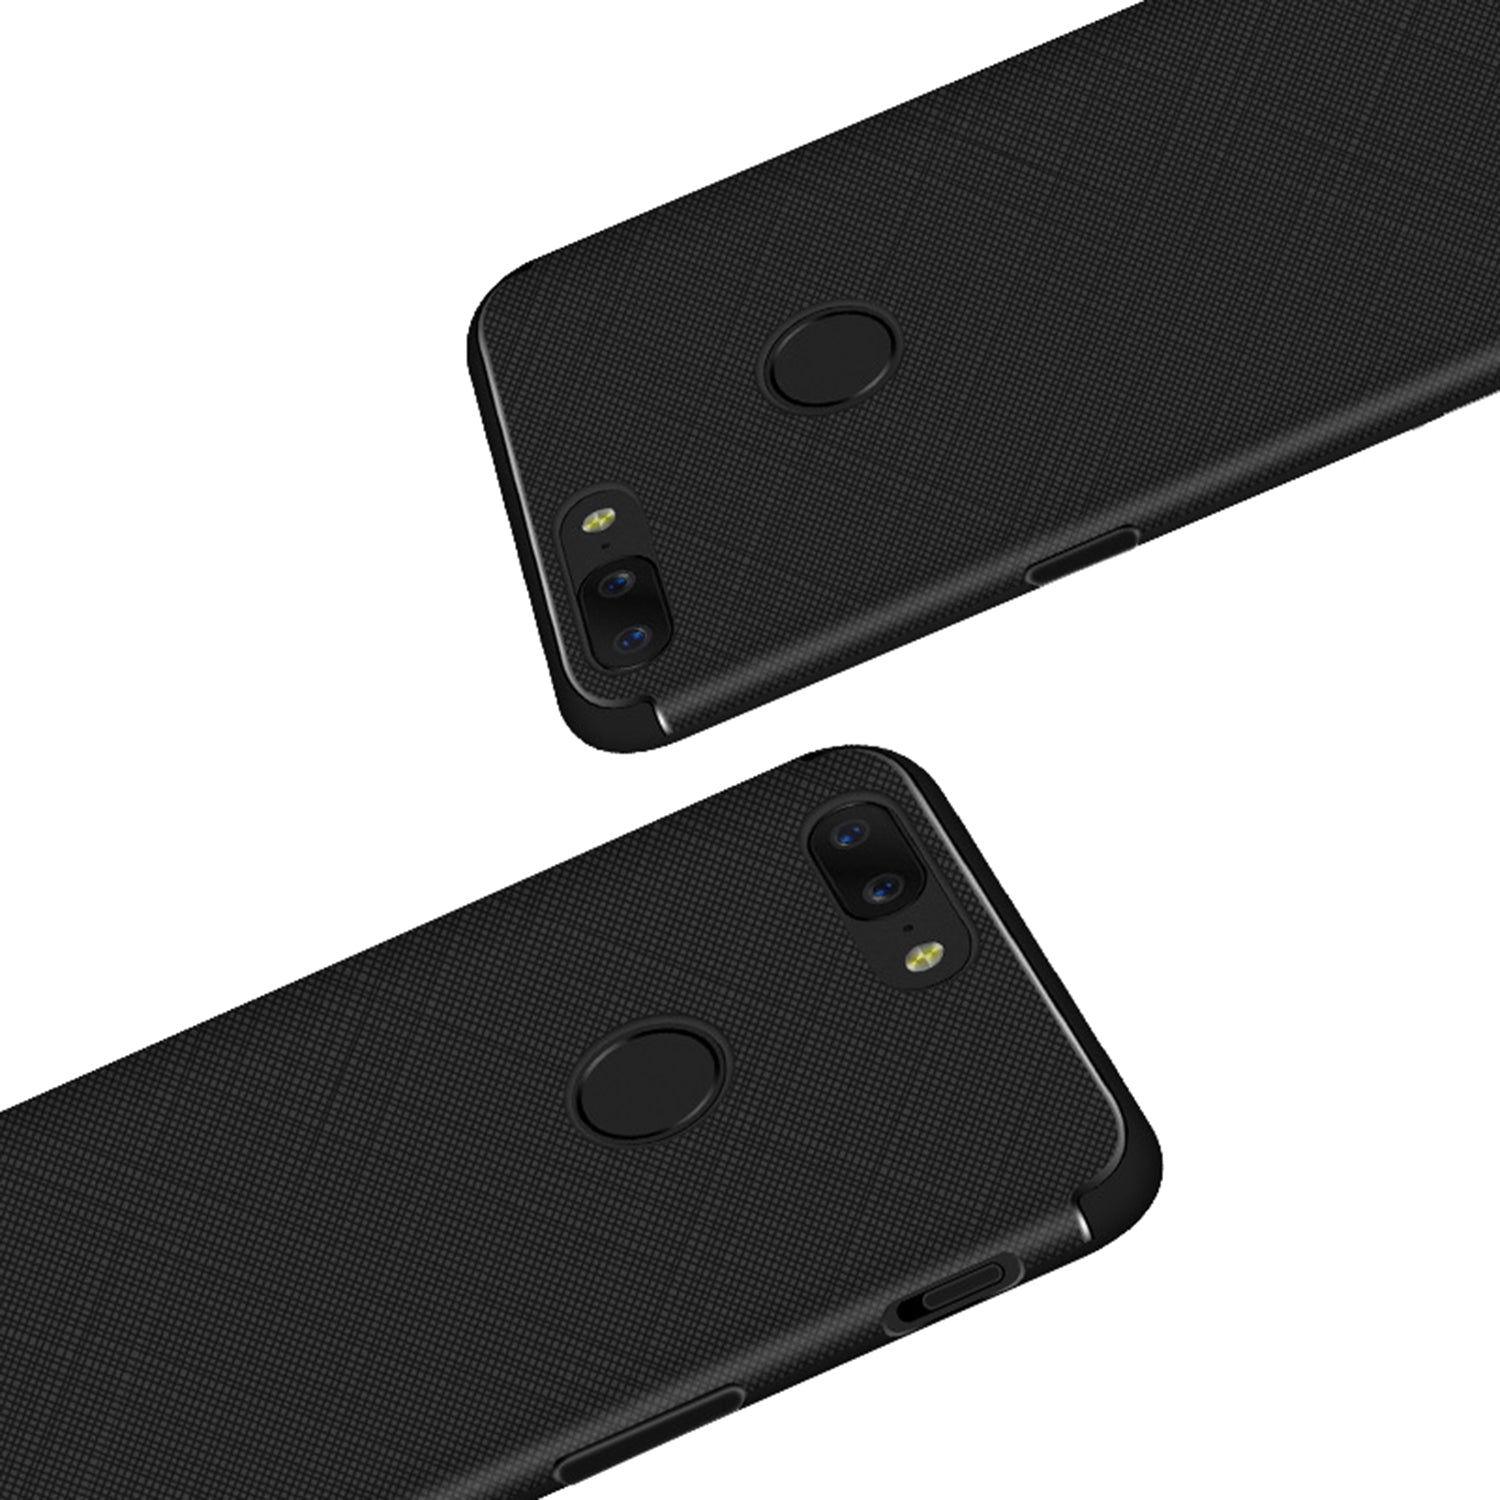 Cross Pattern Anti Skid Protective Flexible Back Case Cover for Oneplus 5T - Black - Mobizang